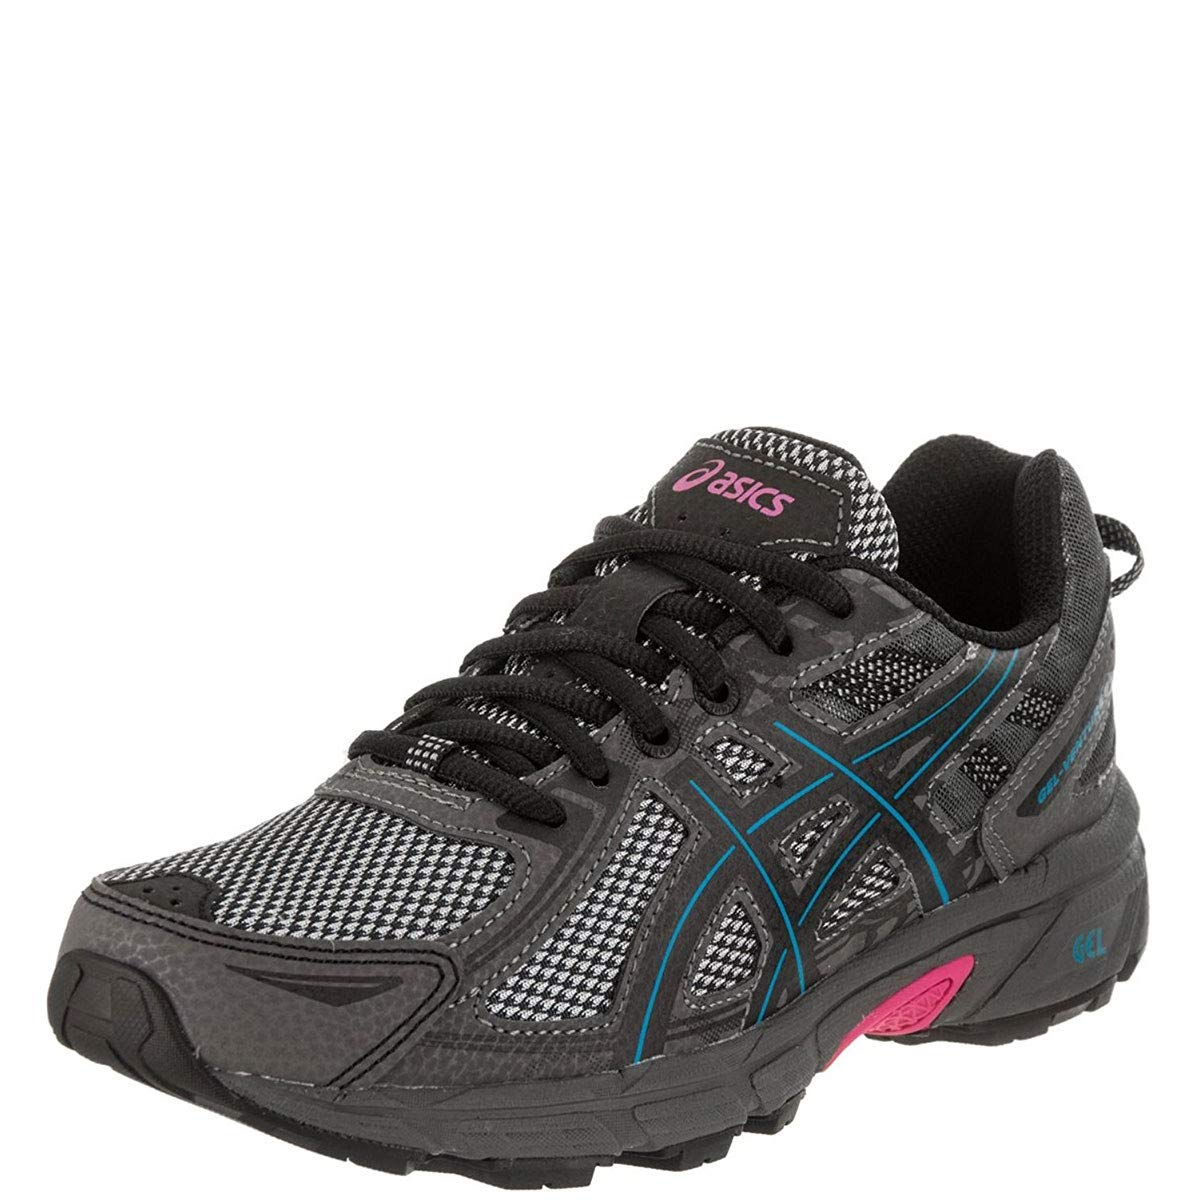 ASICS Women's Gel-Venture 6 Running-Shoes, Black/Island Blue/Pink, 8.5 by ASICS